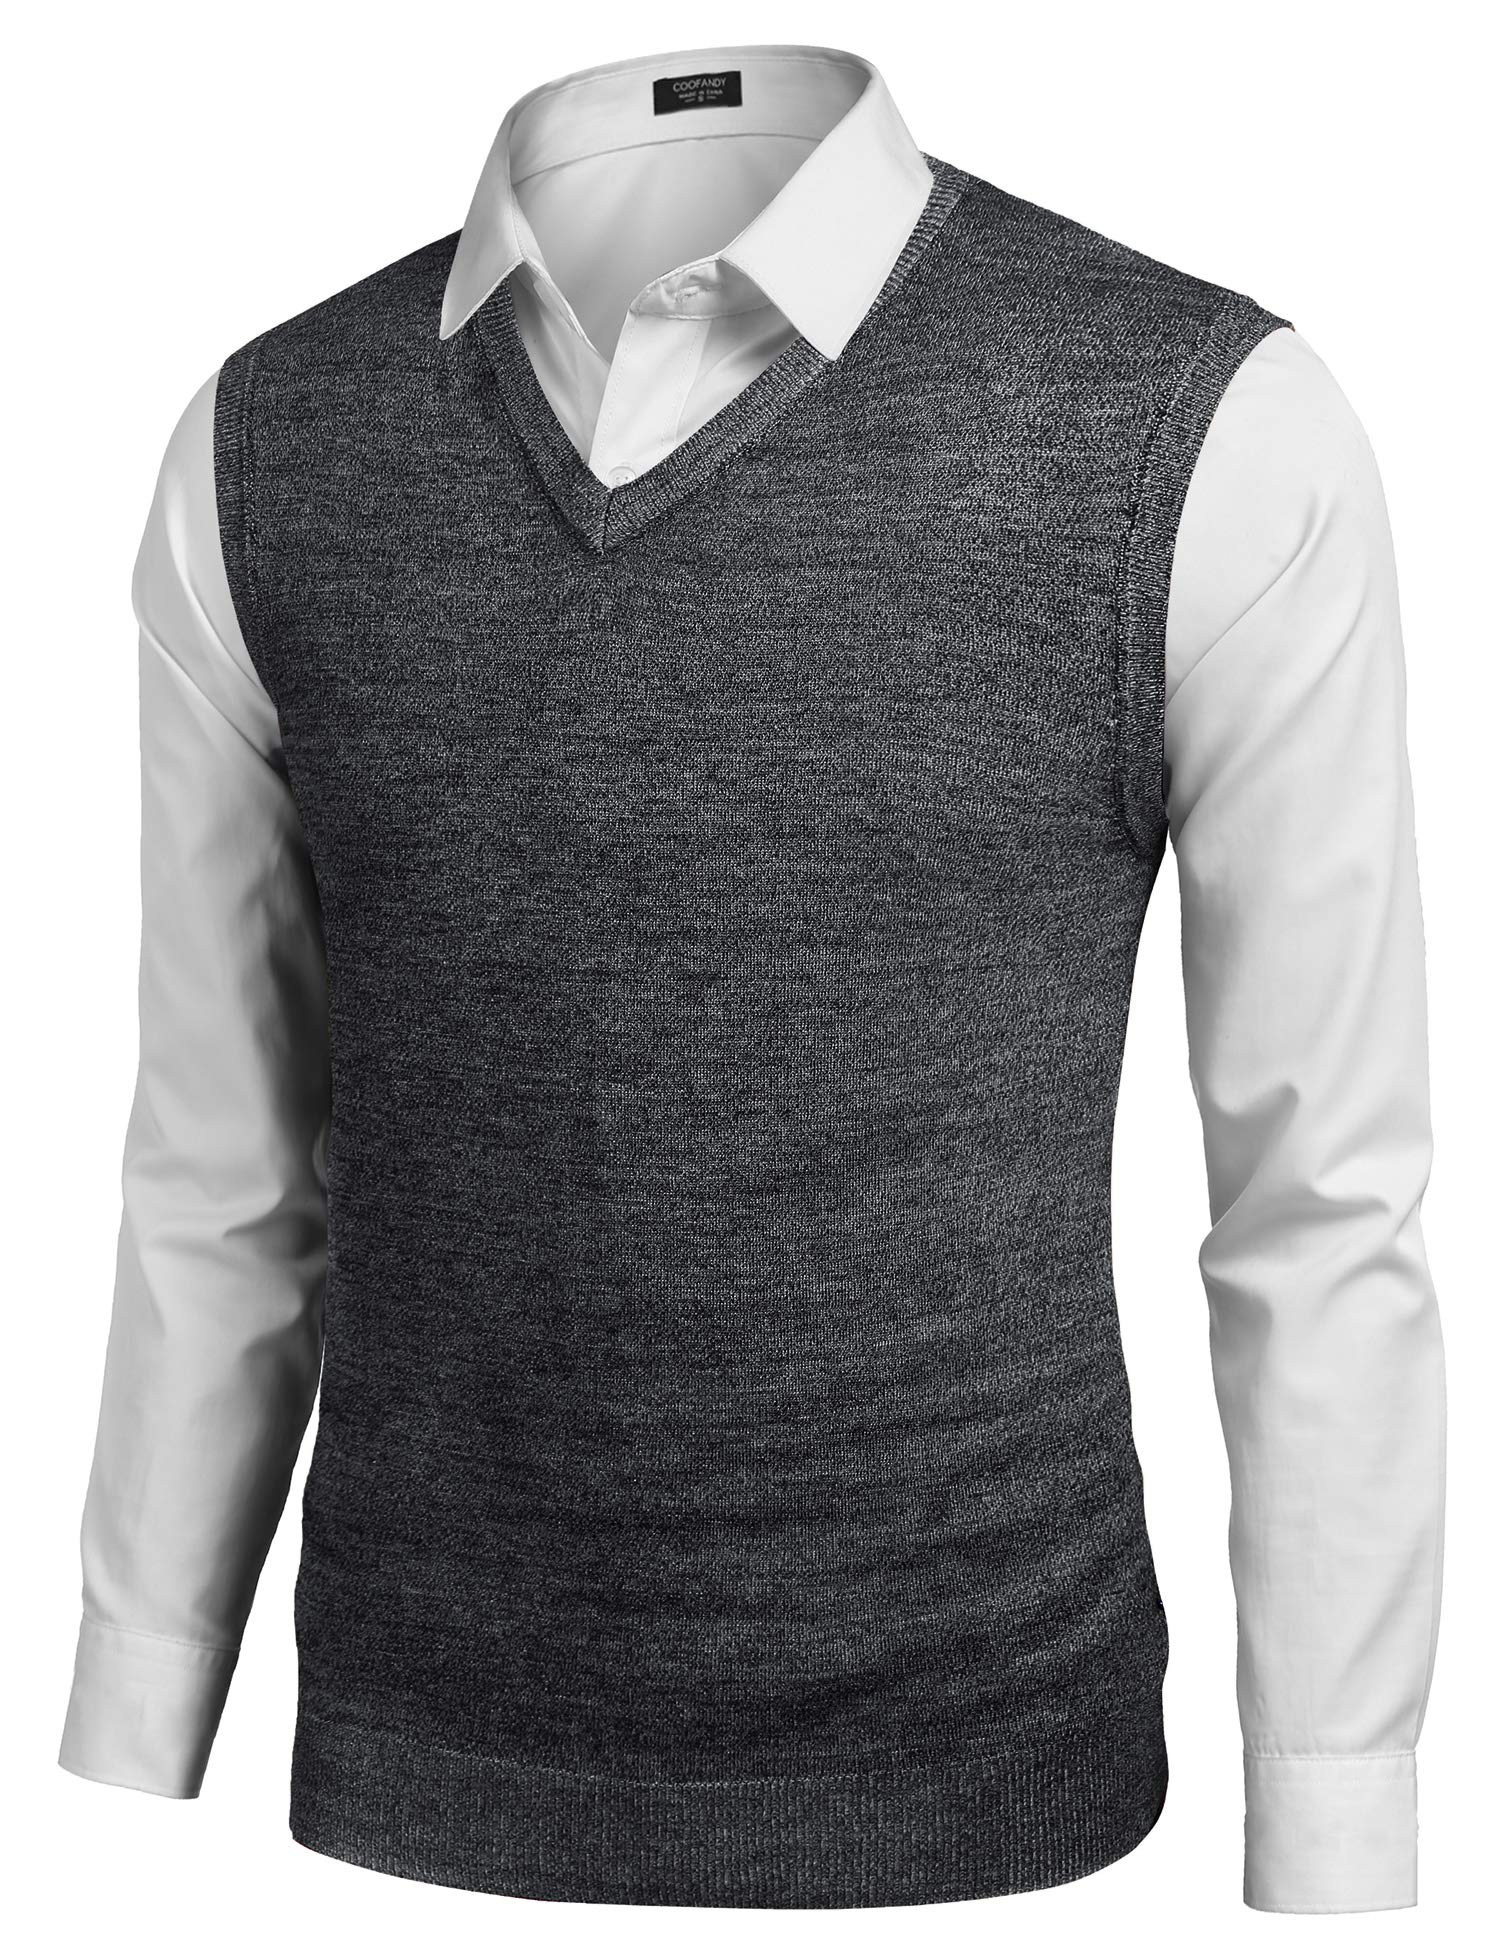 COOFANDY Mens Plain Sweater Vest Casual Slim fit Sleeveless Knit Vest Pullover Black by COOFANDY